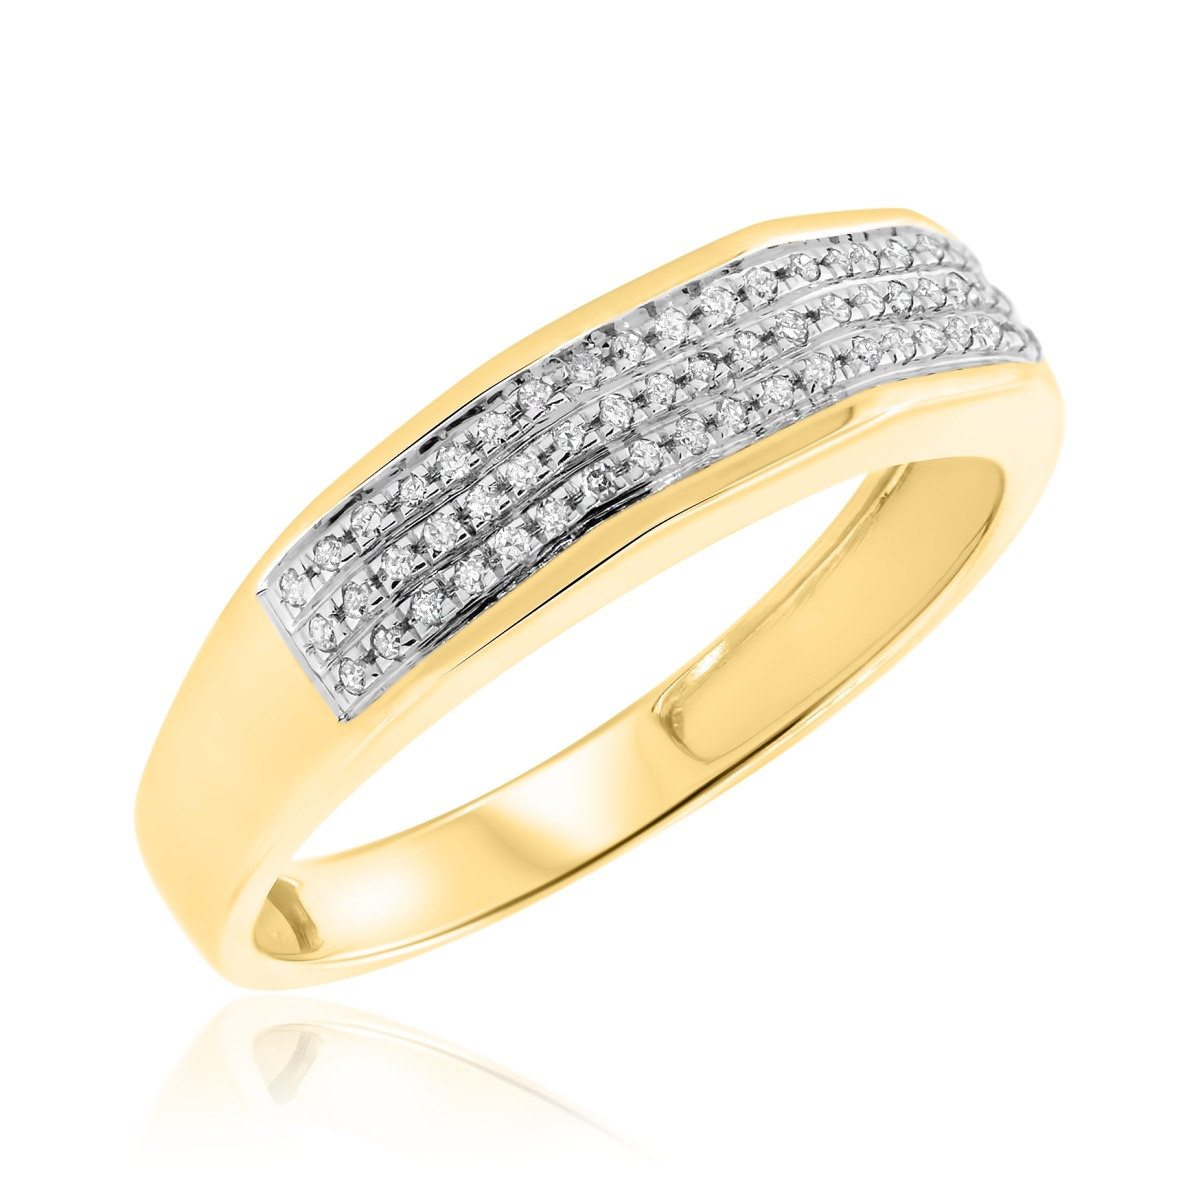 1/10 Carat T.W. Diamond Ladies Wedding Band 10K Yellow Gold